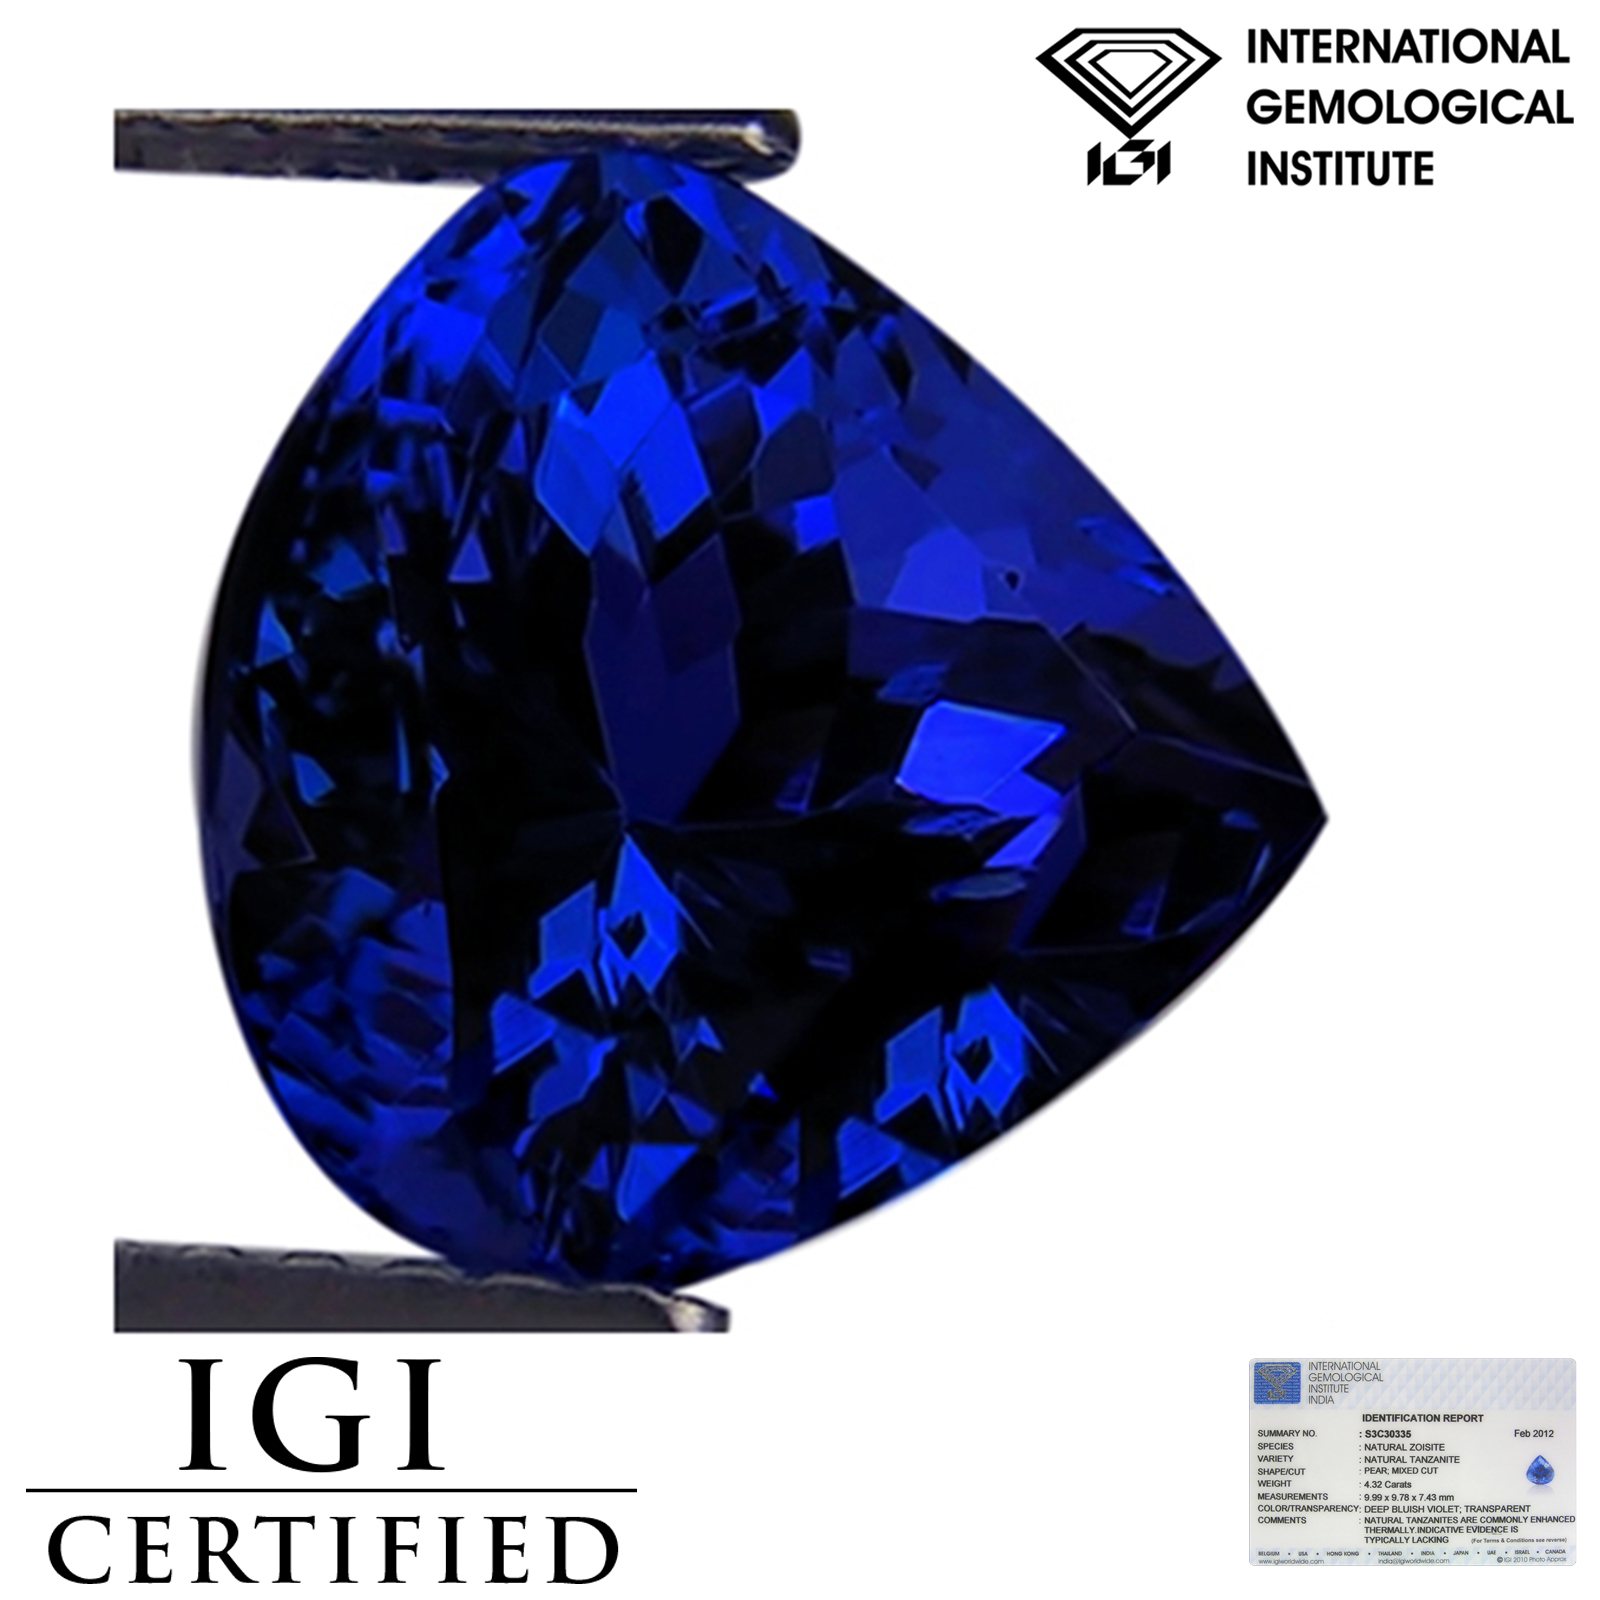 large mineral it blue the variety penny stock tanzanite in hills zoisite gems is discovered northern gem purple manyara journal tanzania of mererani was info region